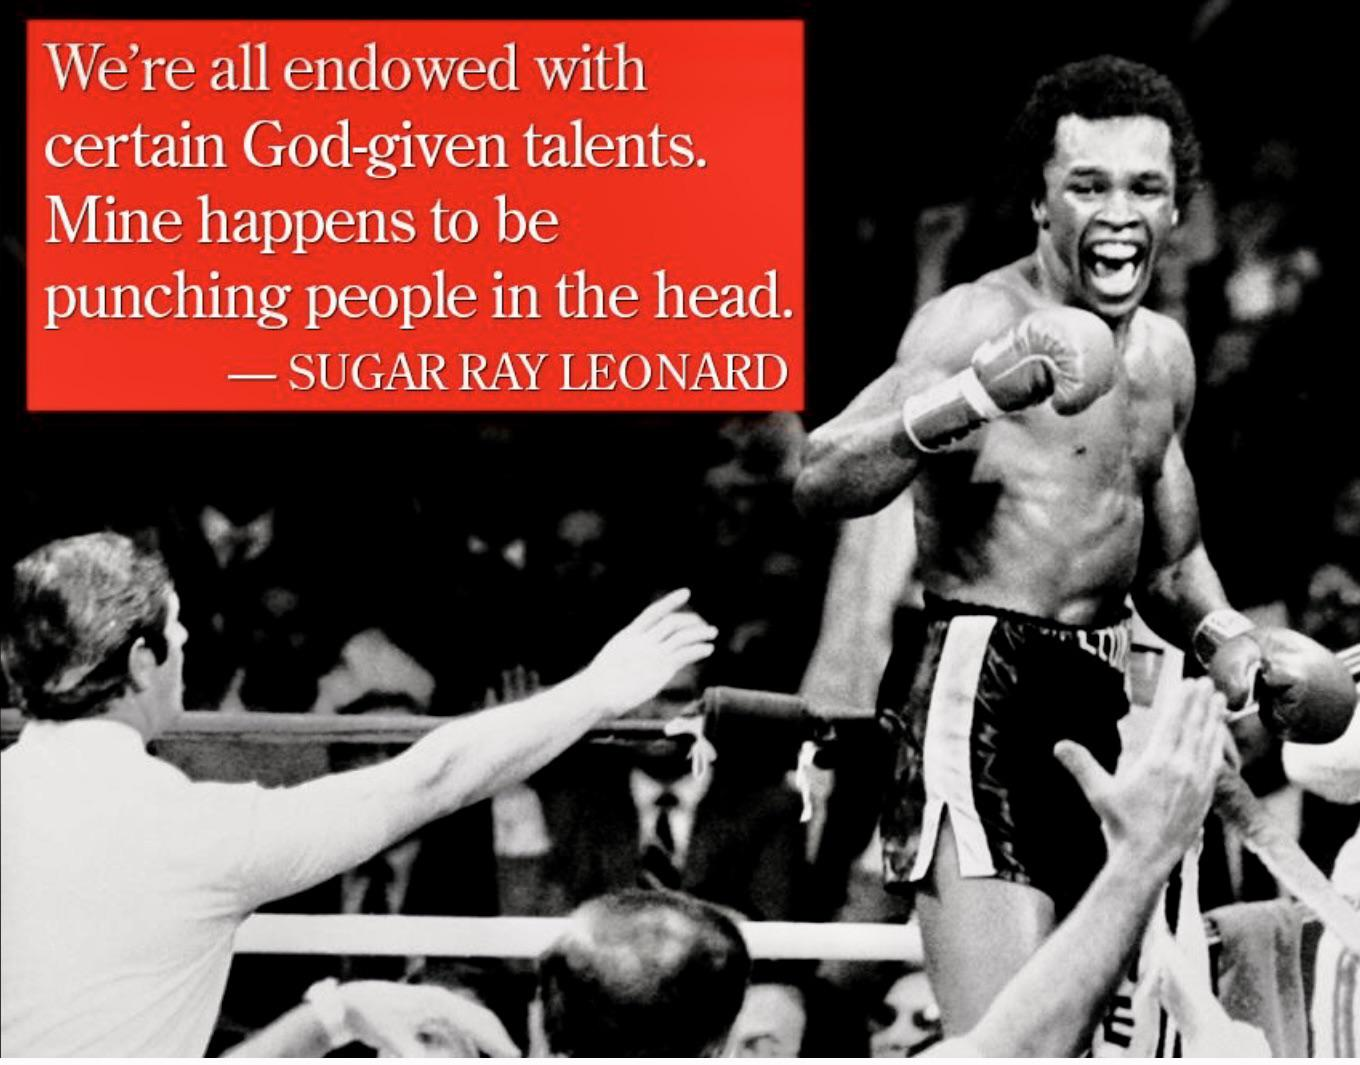 We're all endowed with certain God-given talents. ~Sugar Ray Leonard [1360 x 1065]